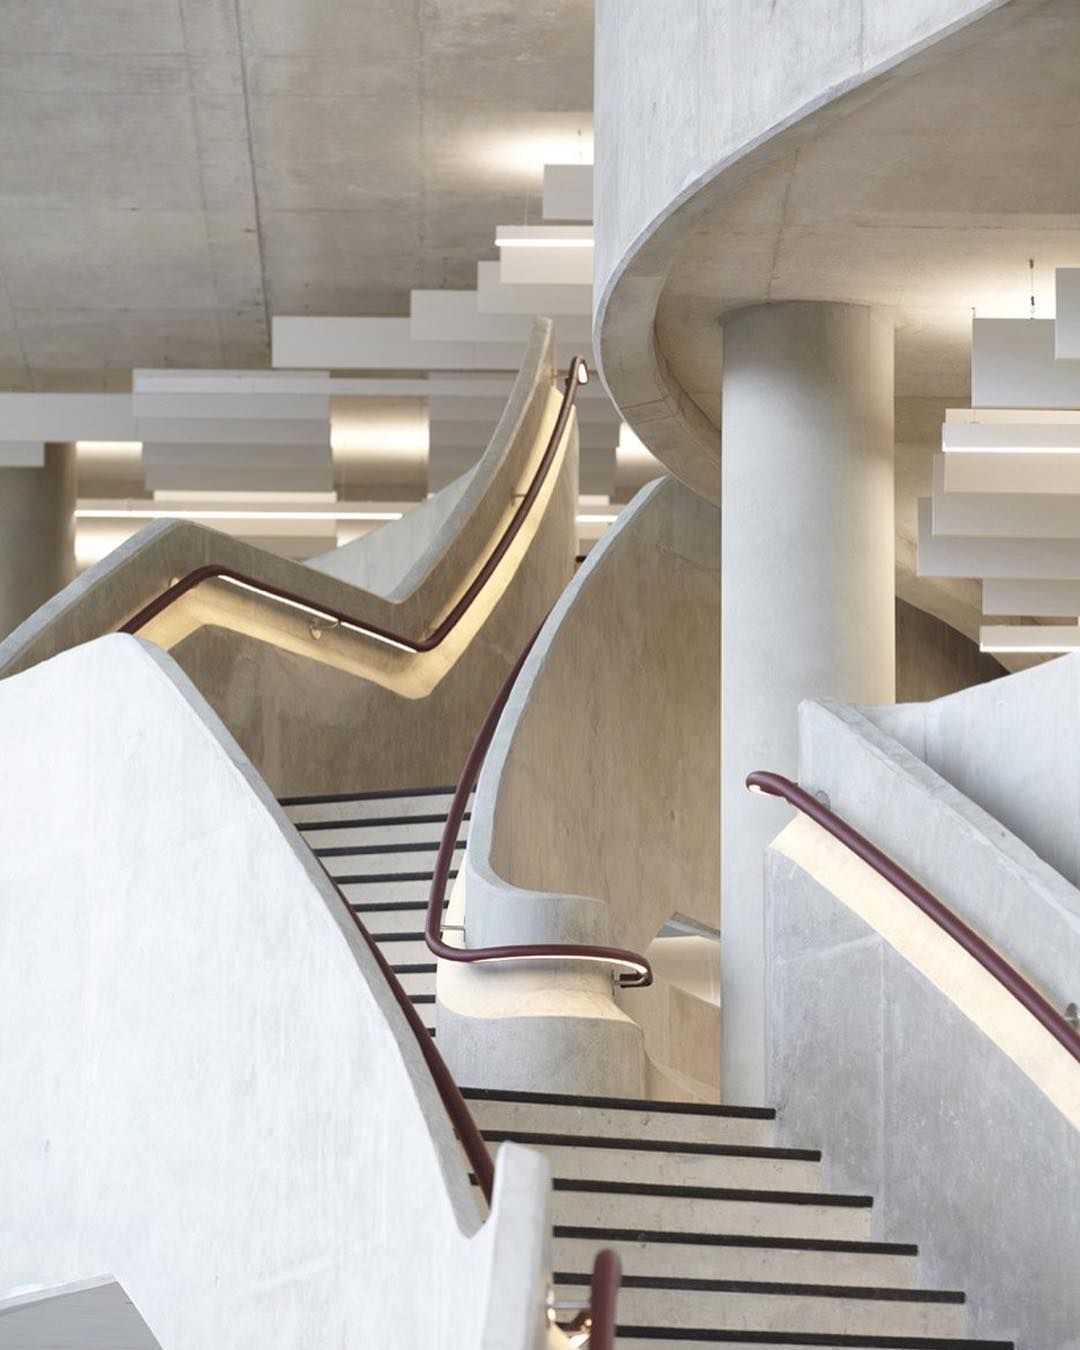 London architecture firm Make added leather handrails to